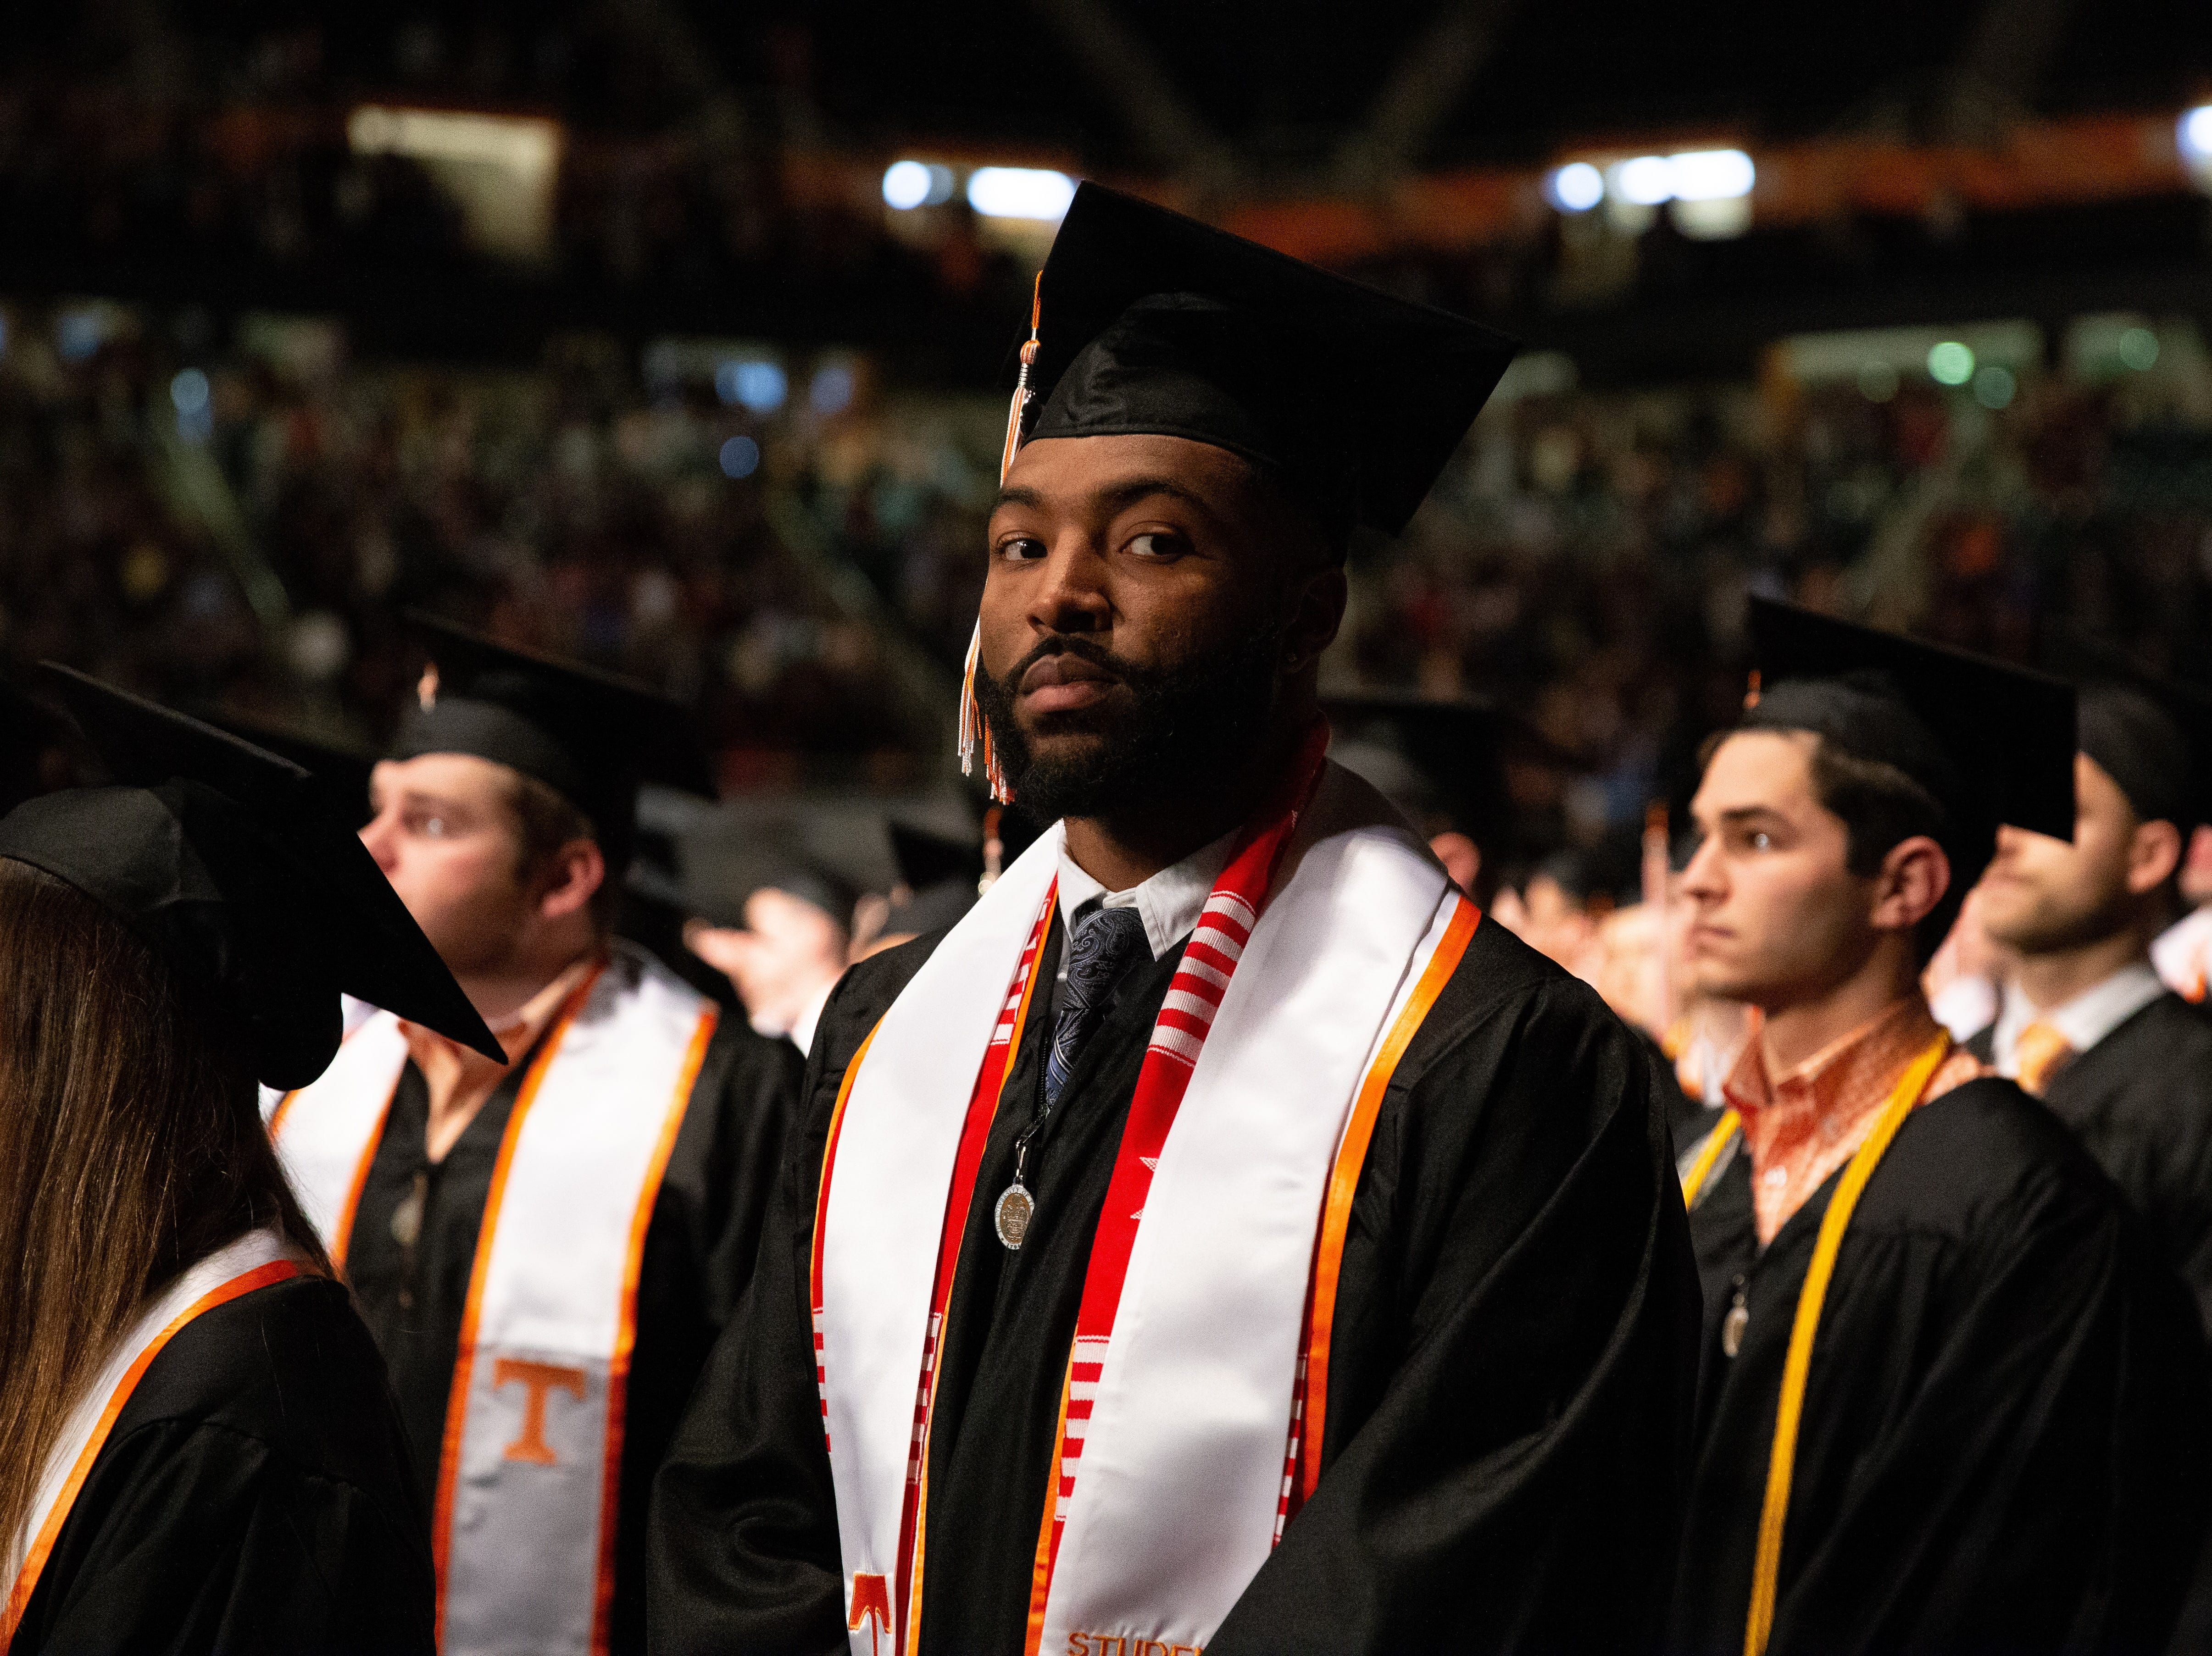 Graduate Micah Abernathy waits his turn to be called to the stage during the University of Tennessee winter Commencement ceremony atThompson-Boling Assembly Center and Arena in Knoxville Friday, Dec. 14, 2018.